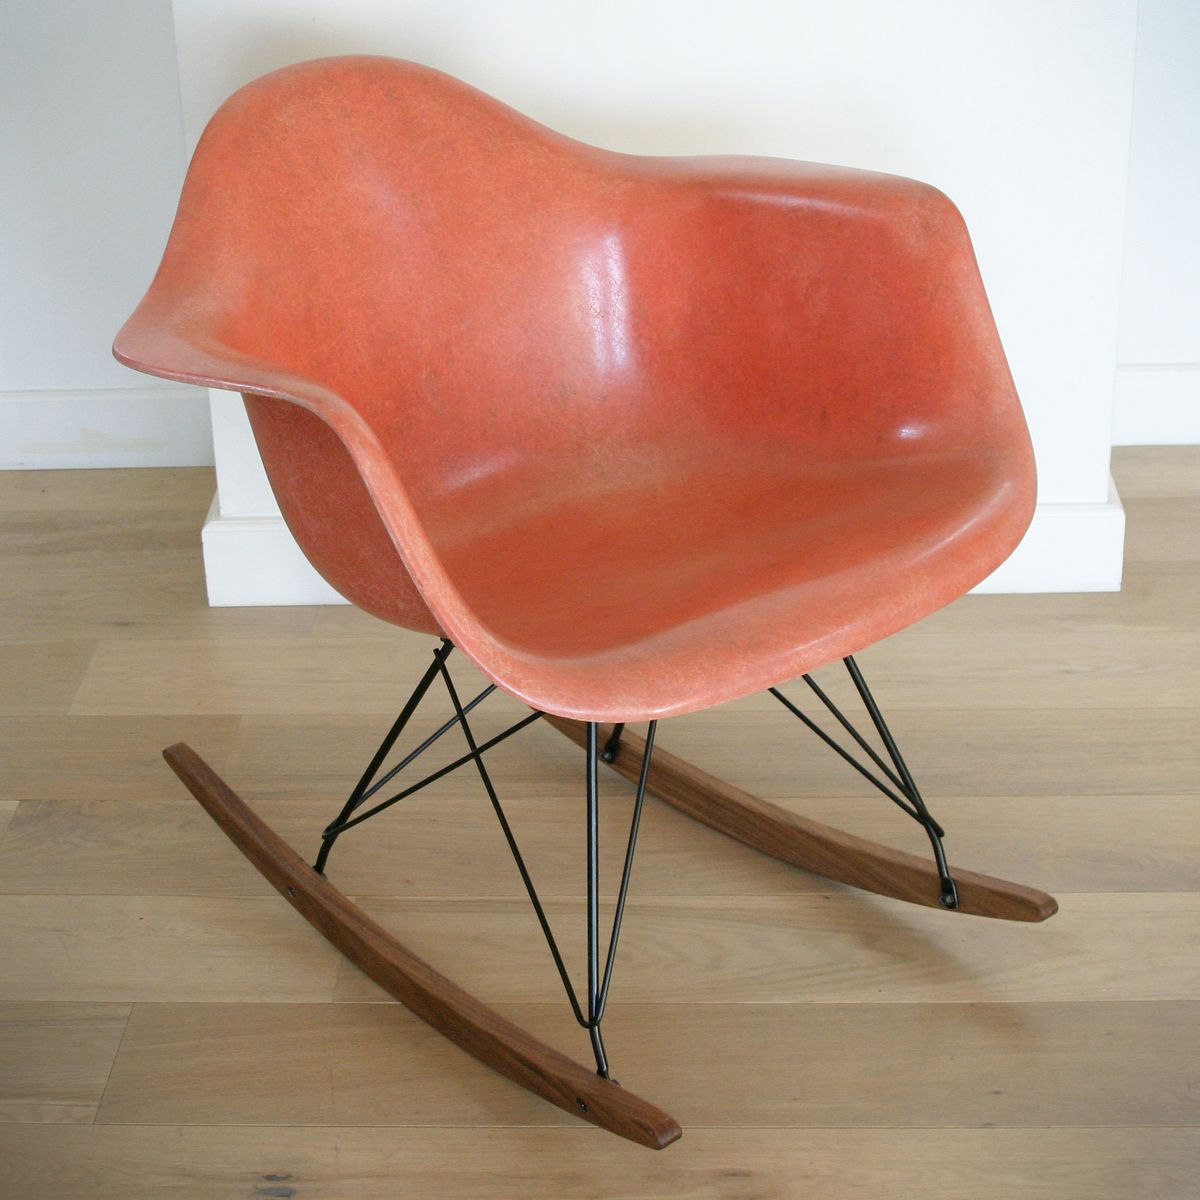 Rar rocking chair by eames for herman miller for sale at for Eames replica schaukelstuhl